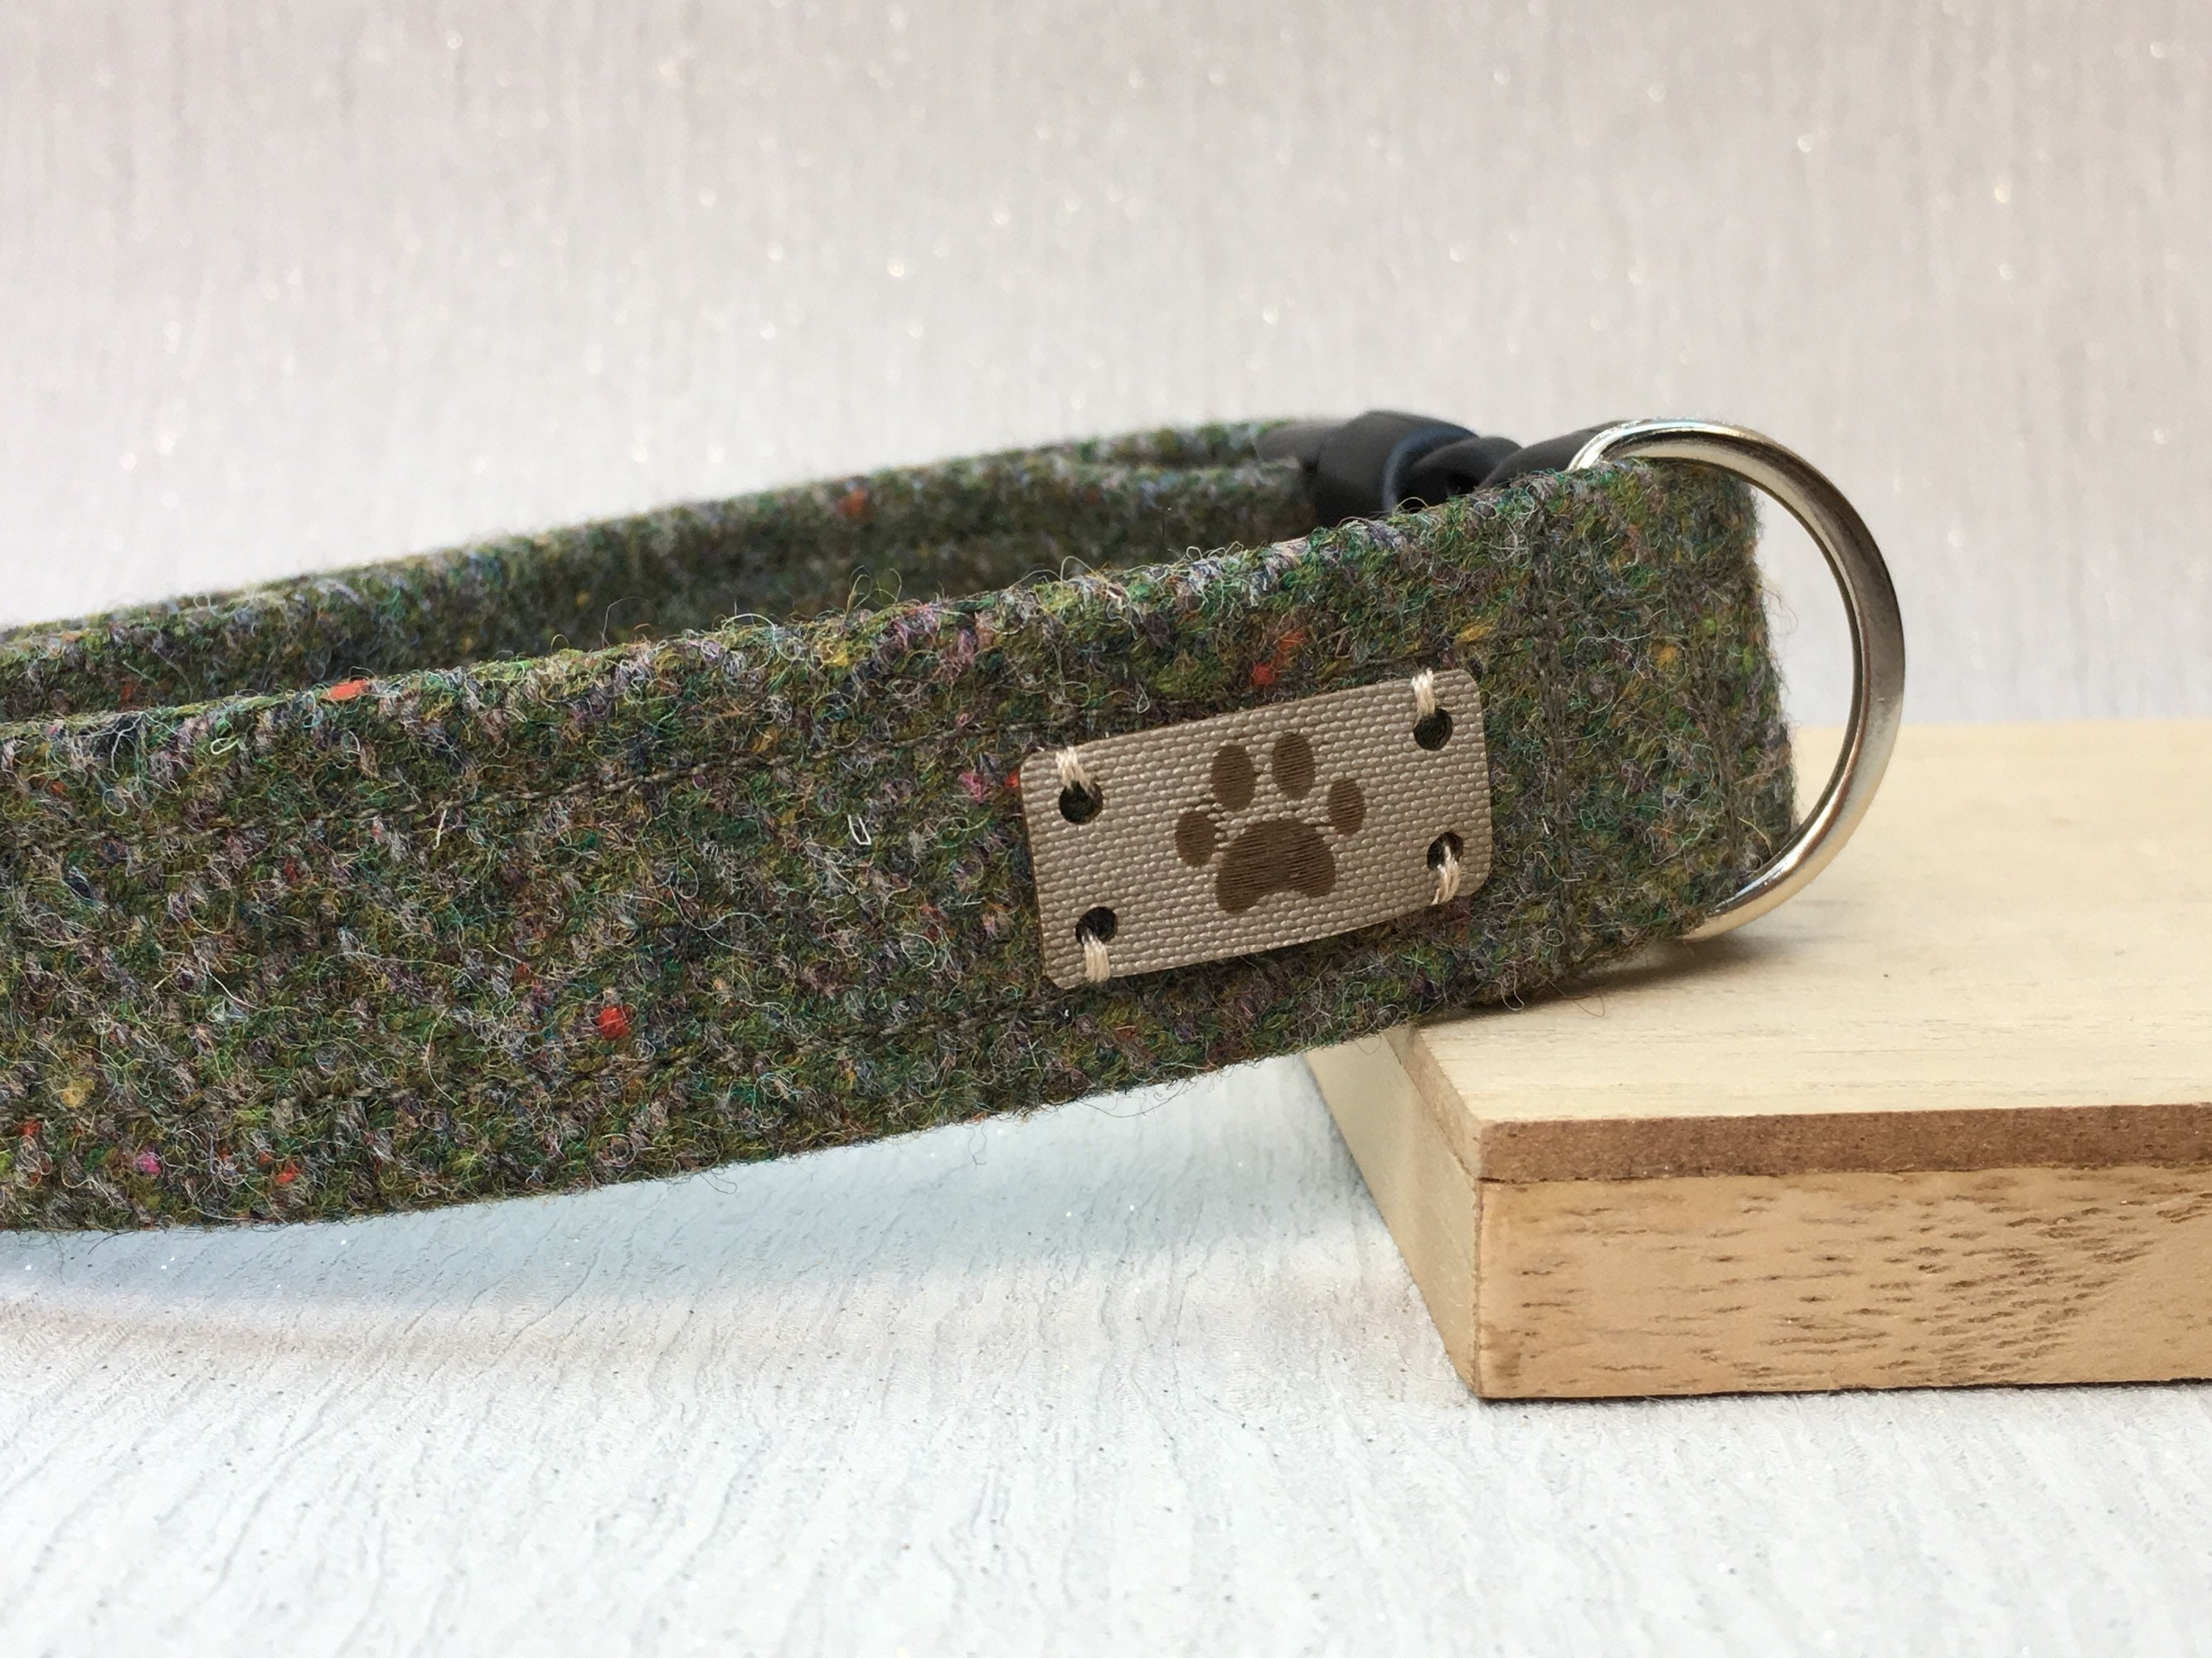 57bb6c68cb06 Green Donegal Tweed, Dog Collar, Irish Tweed Dog Collar, Adjustable Collar,  Dog Accessory, Handmade Collar, Country Chic Dog, Gift for dogs